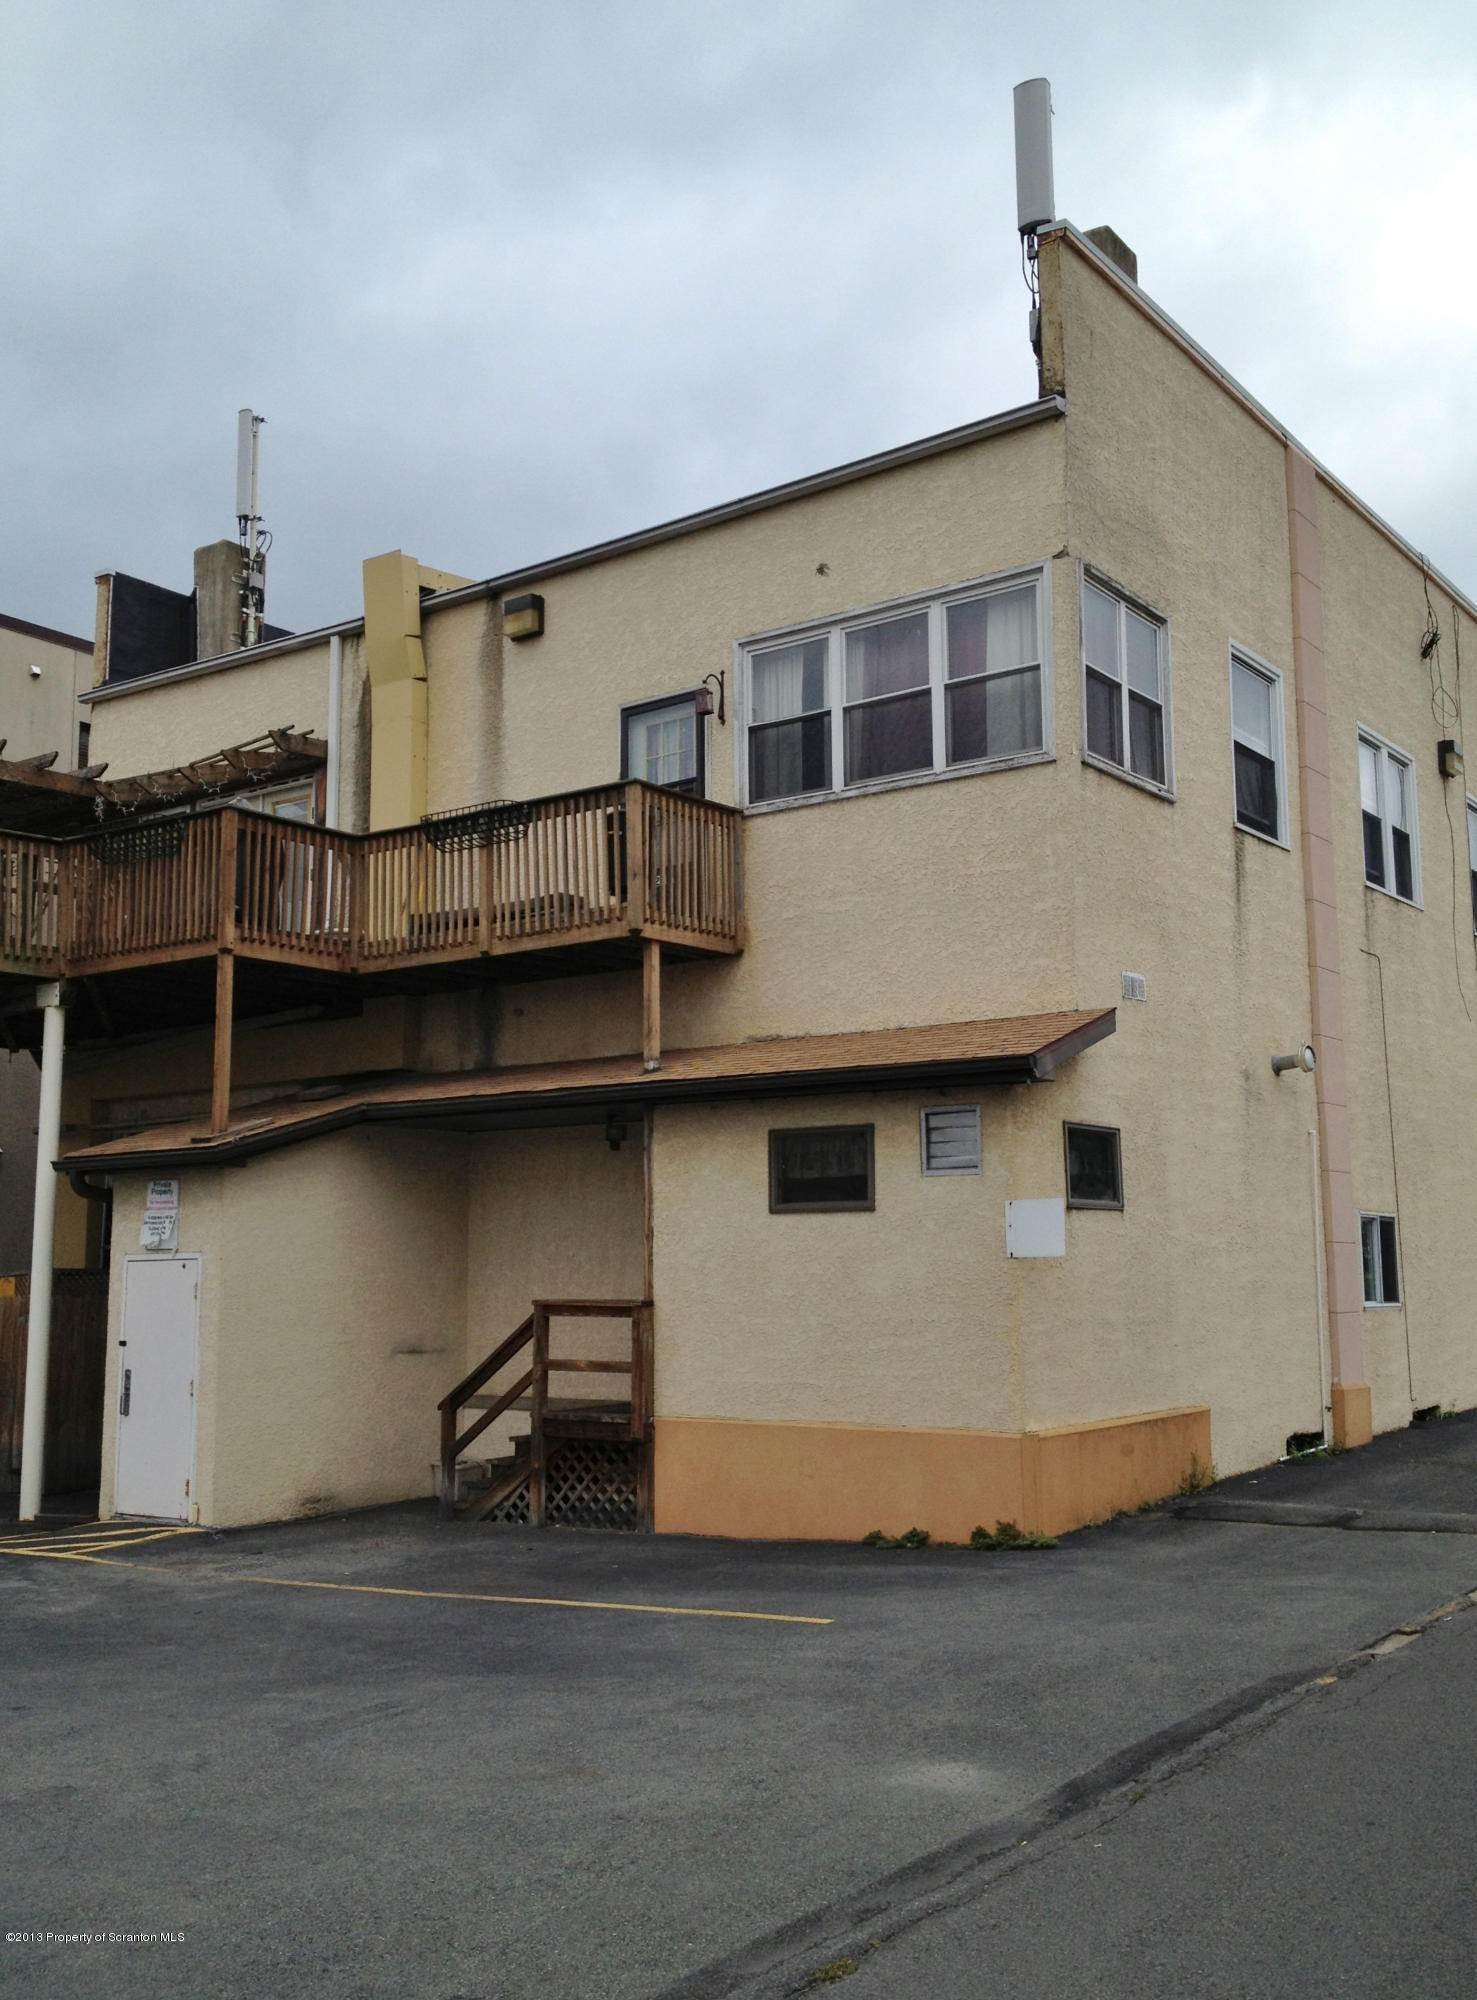 2. Commercial for Rent at 228 Main St Old Forge, Pennsylvania 18518 United States